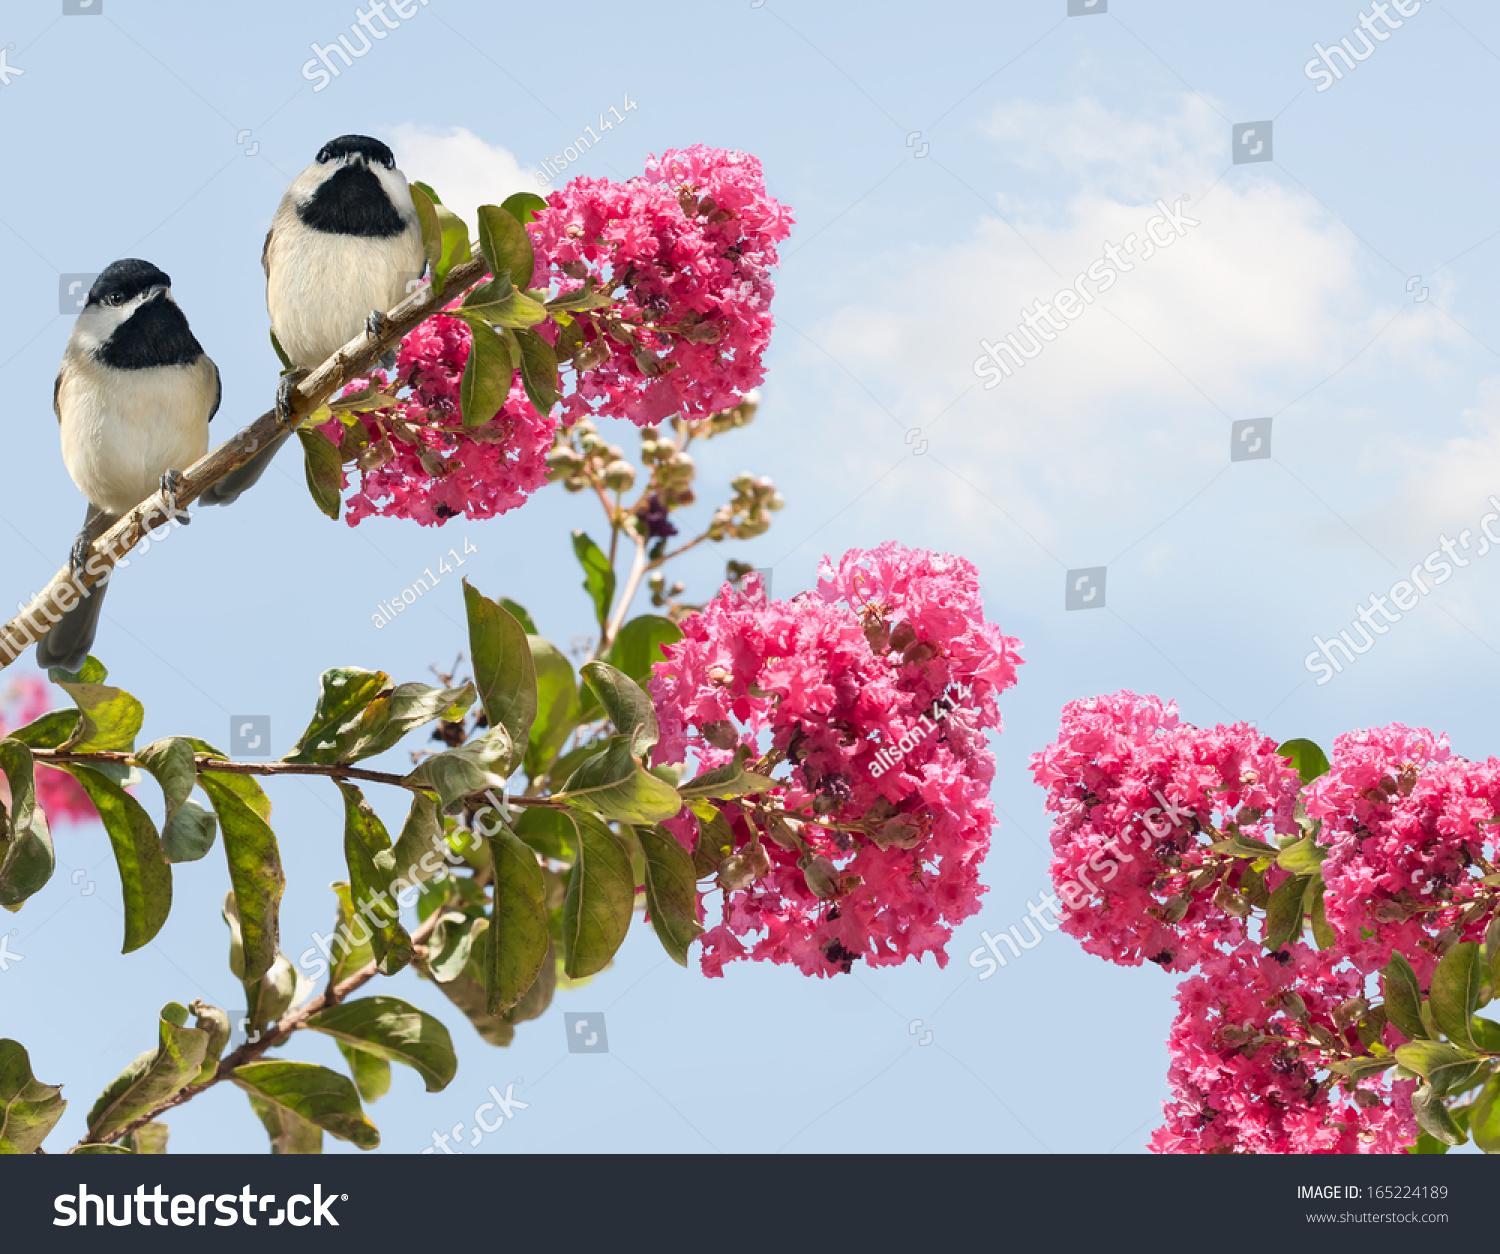 stock-photo-two-adorable-chickadees-perc